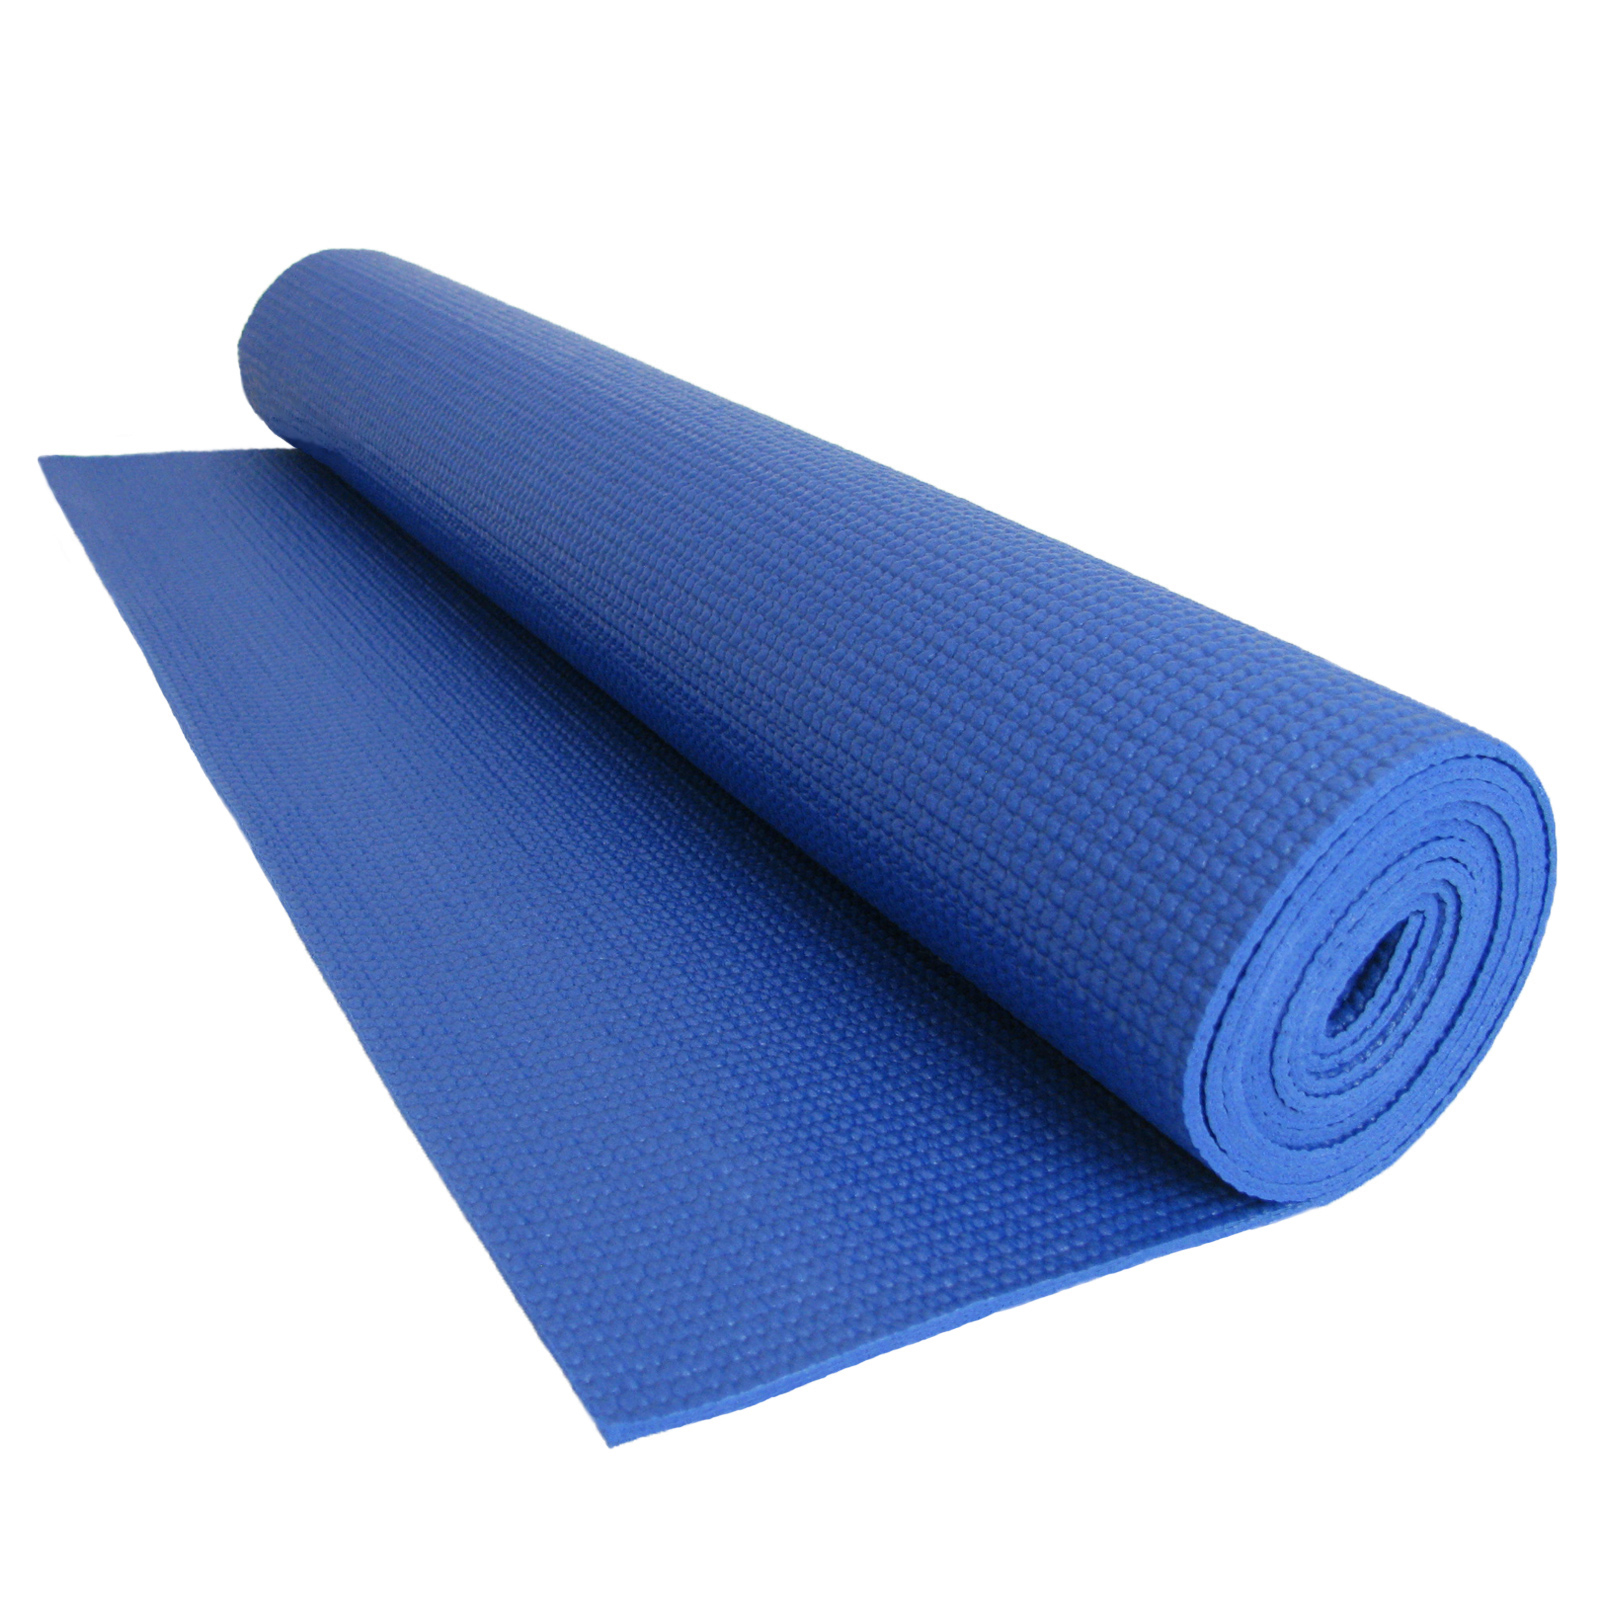 Yoga Mat Beginners Exercise Pilates Non Slip Assorted Karma Gym With